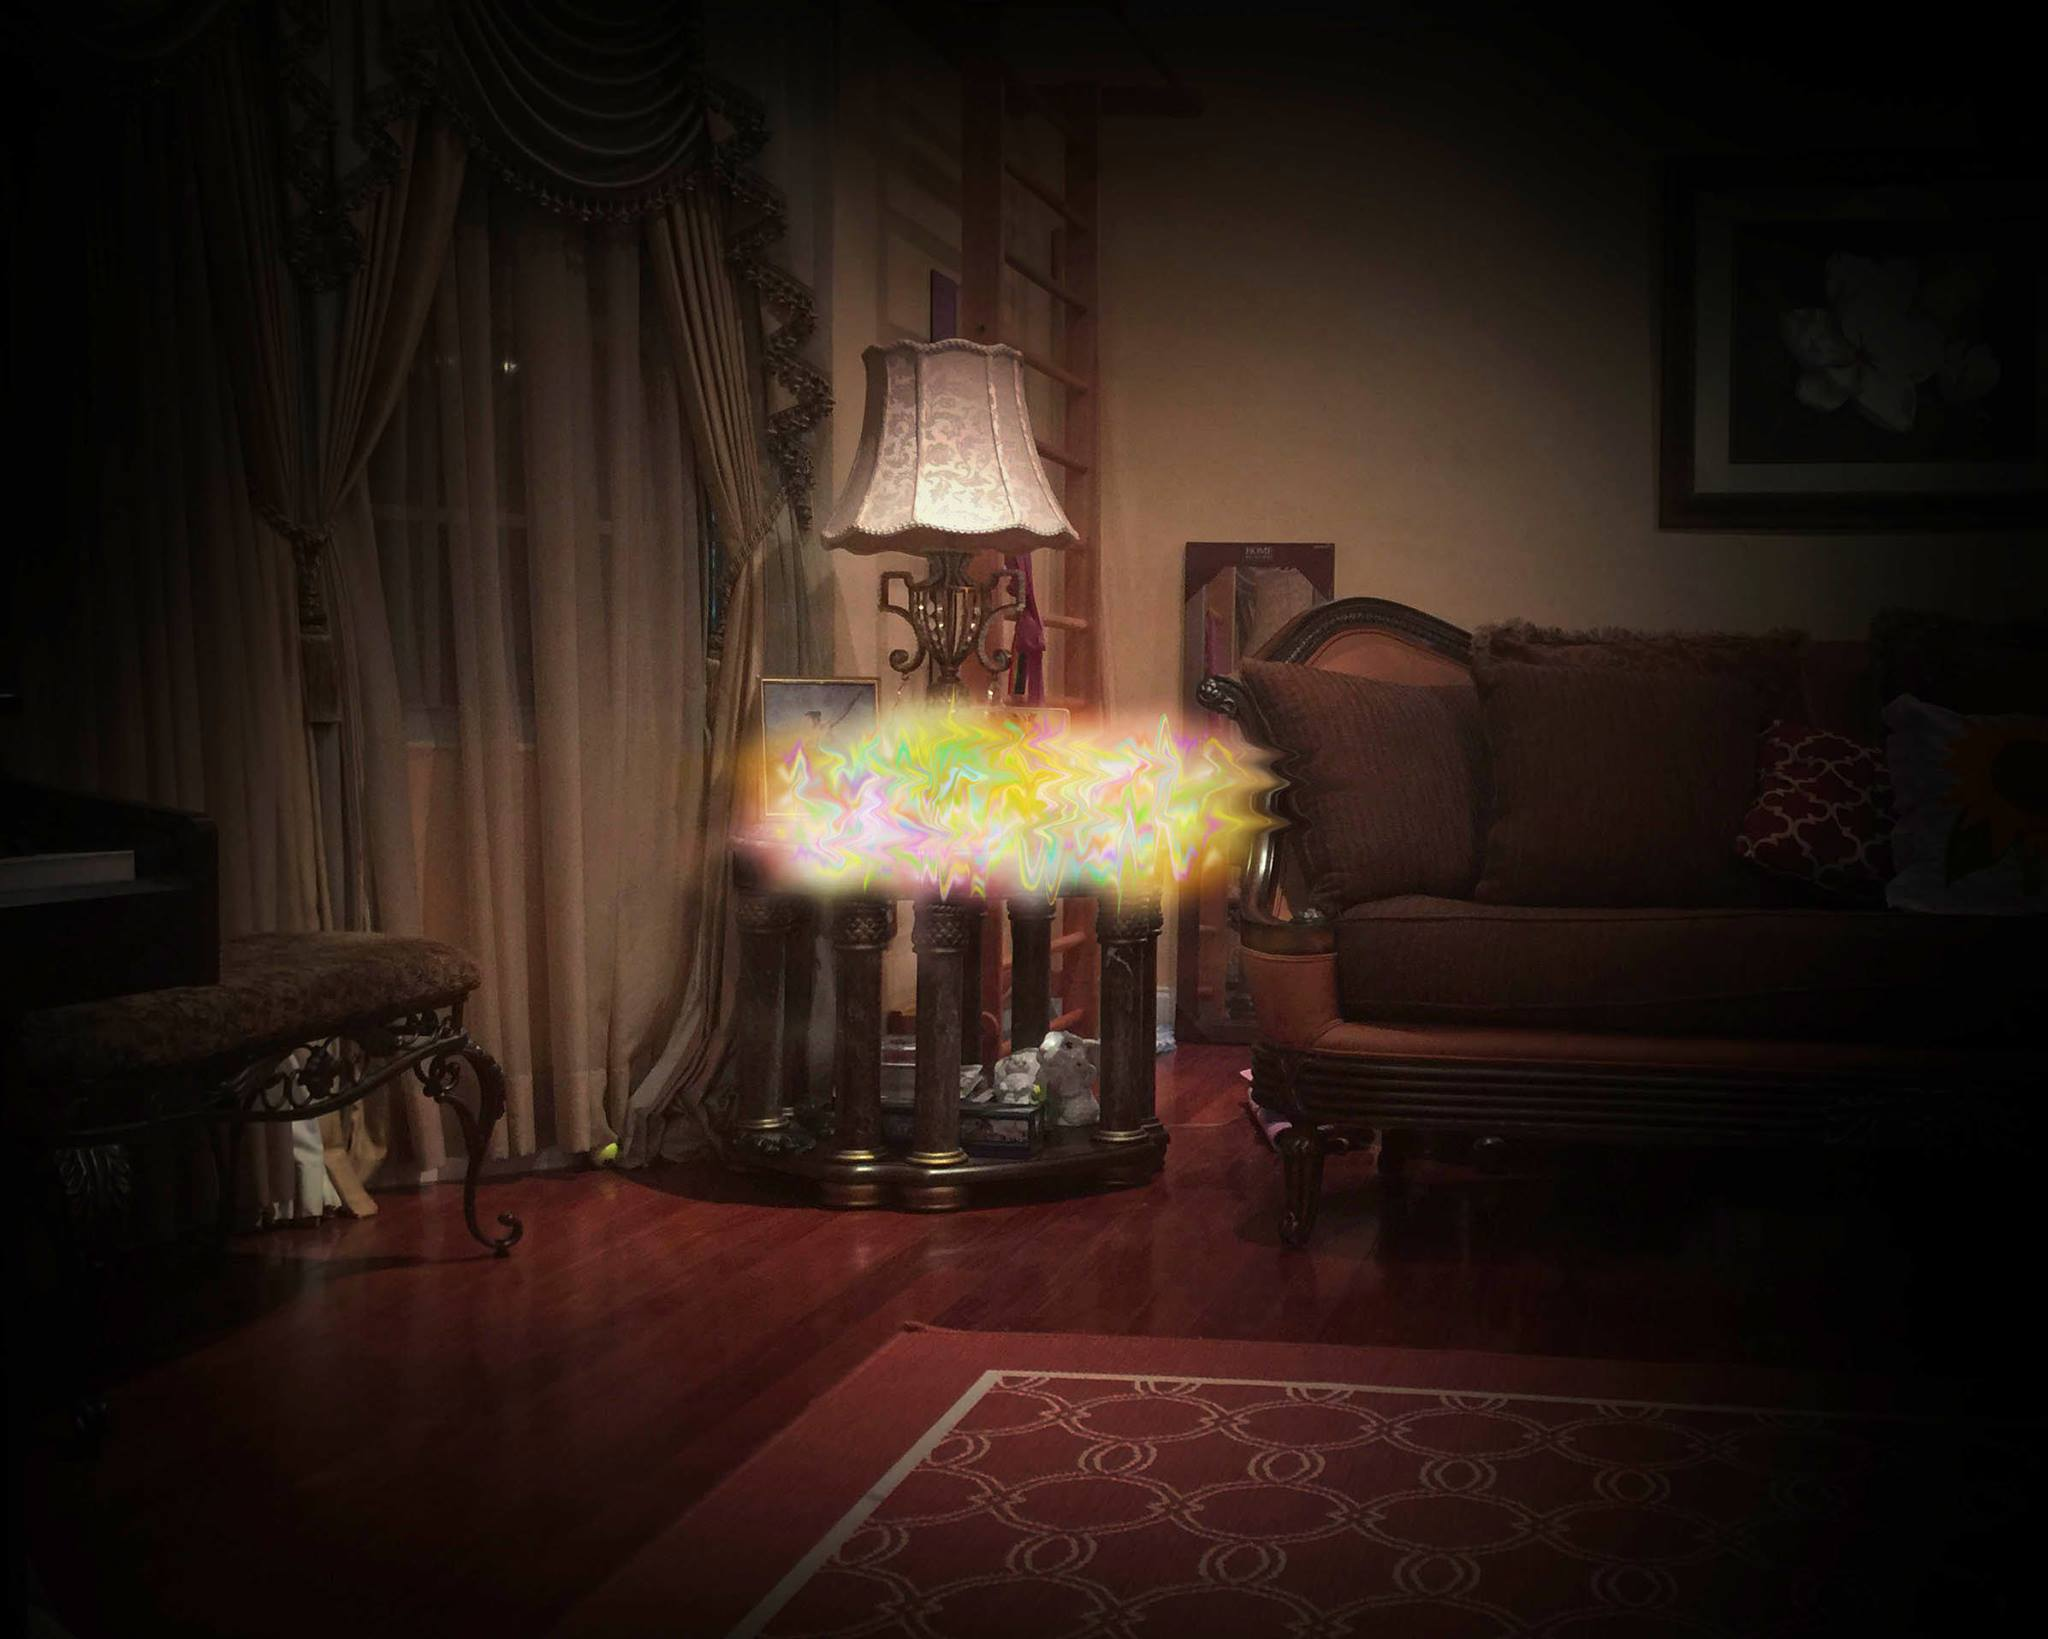 Photos Extra Ghost ( httpswww.facebook.comphoto.phpfbid=1783784761652956&set=a.891495037548604.1073741827.100000643498963&type=3&theater ) 25588028_1783784761652956_5906866604602380751_o